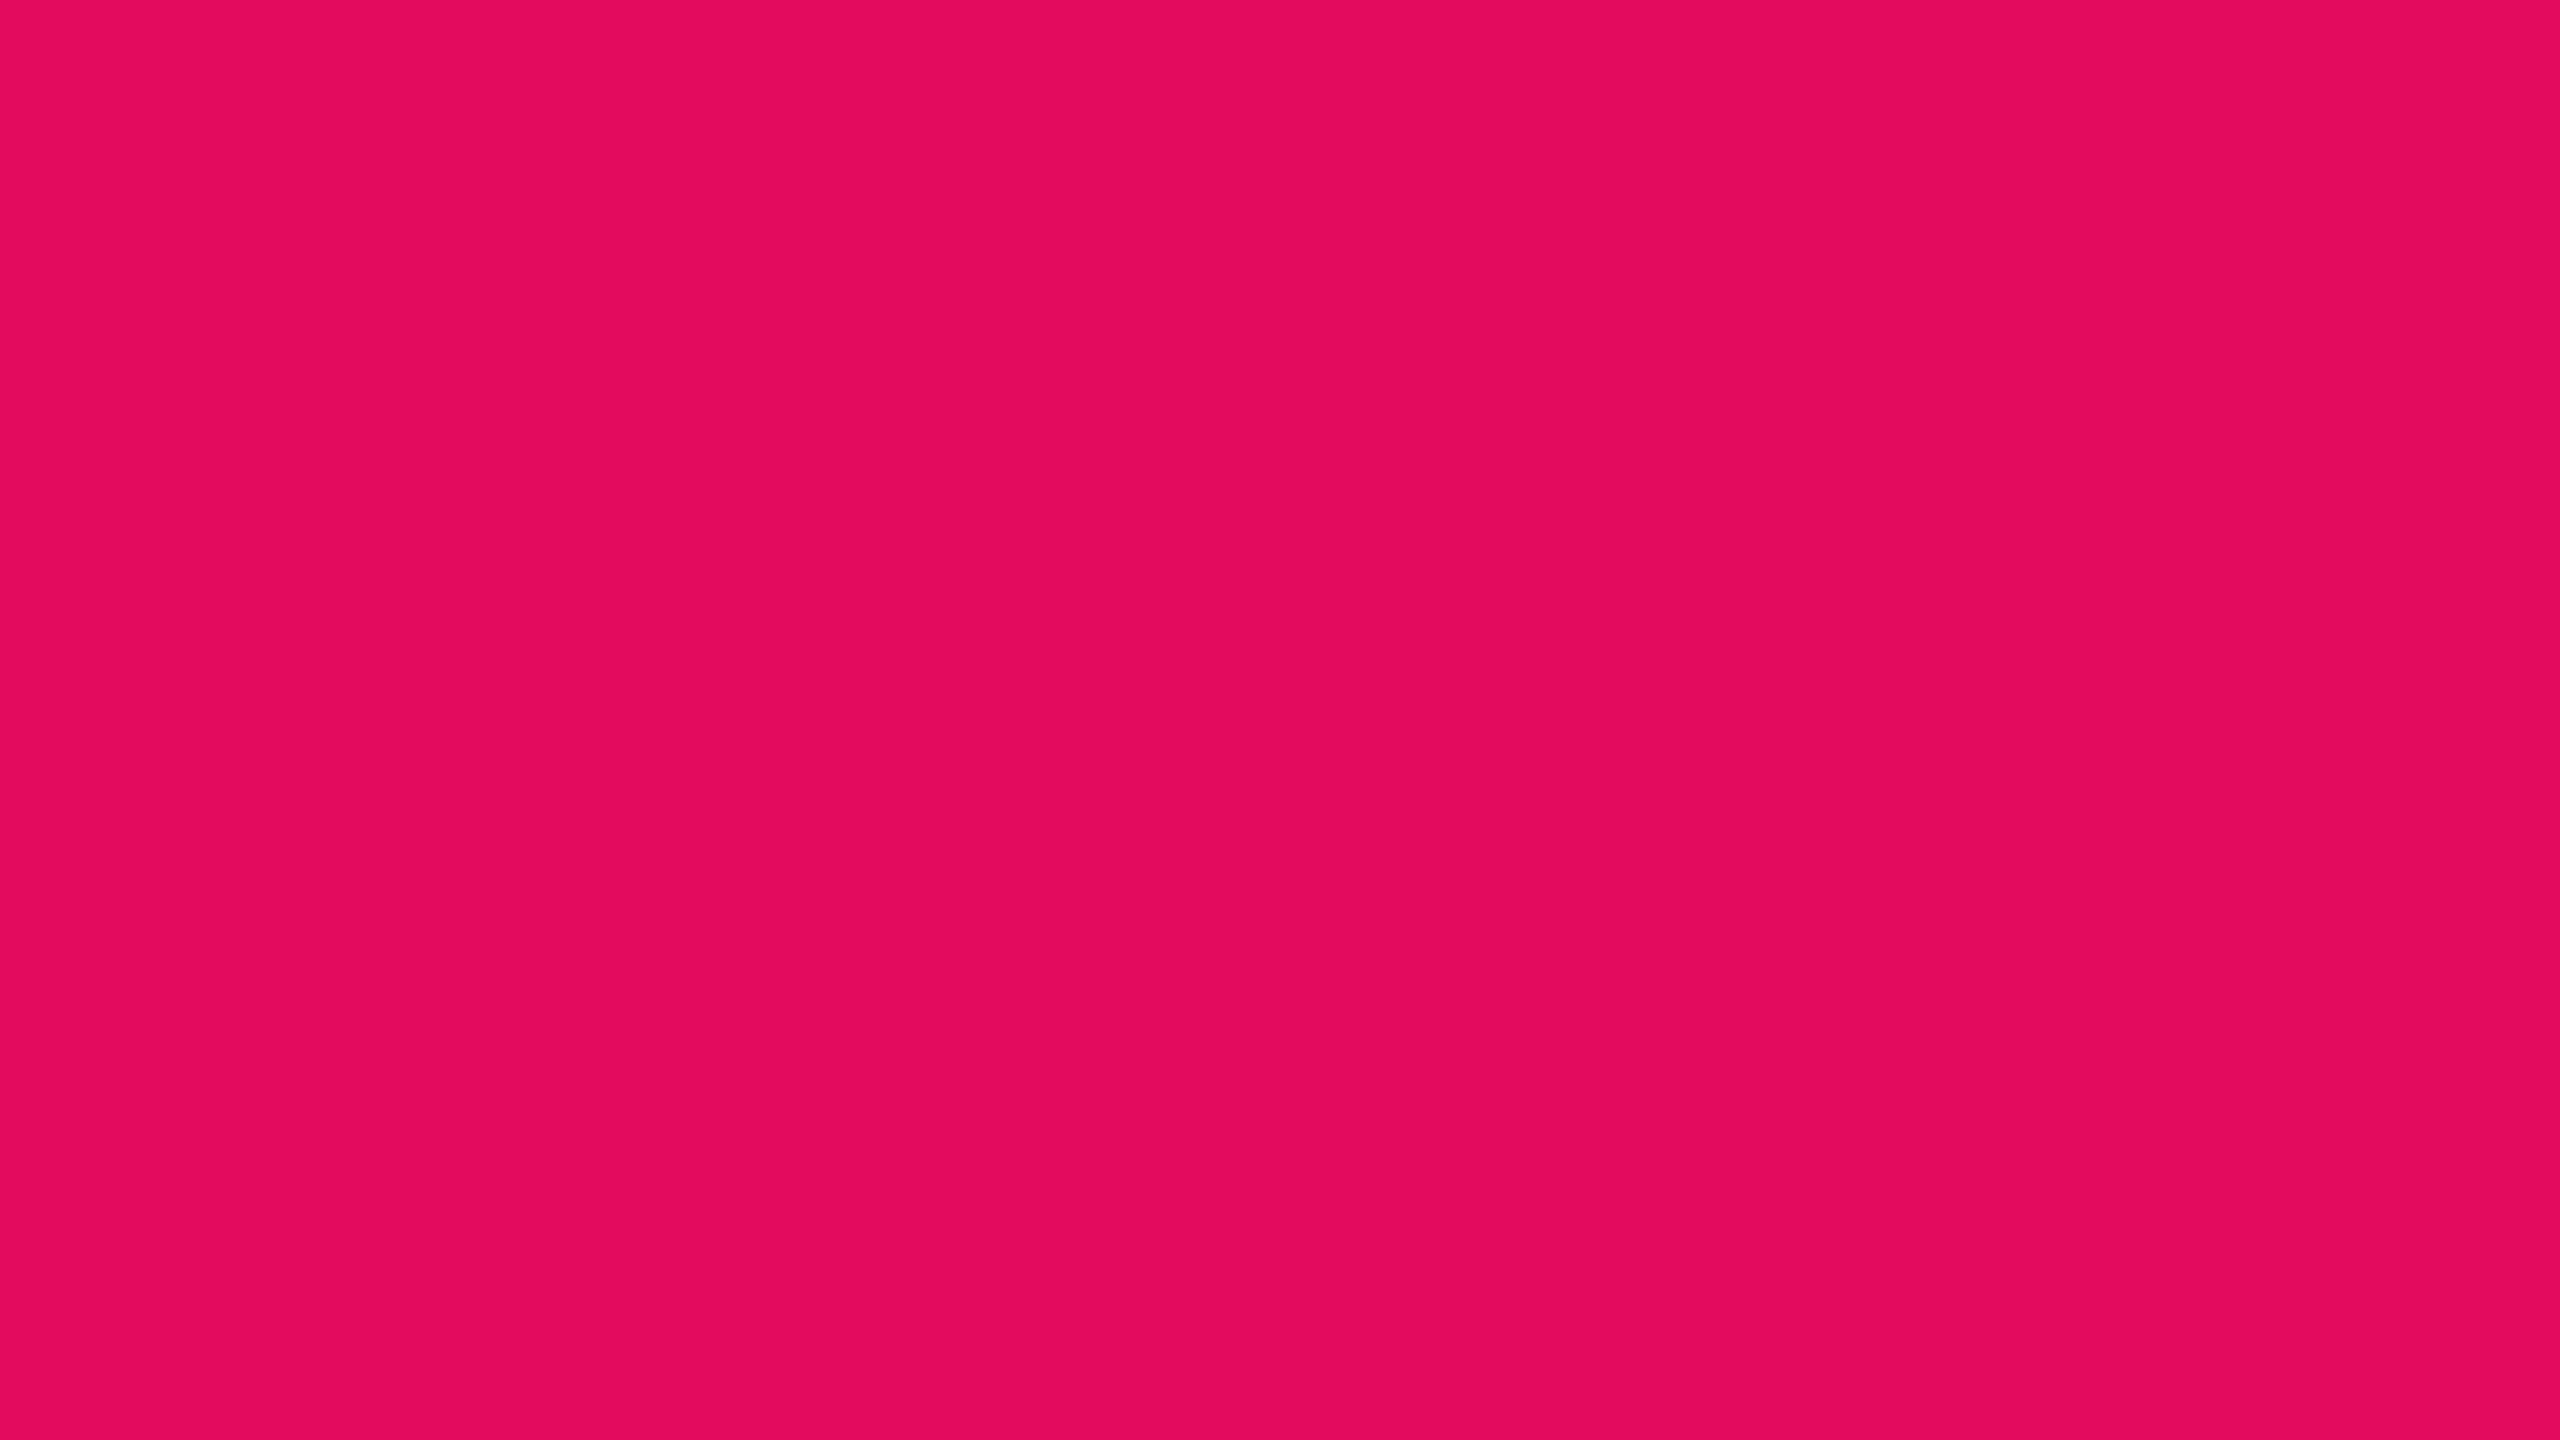 2560x1440 Raspberry Solid Color Background